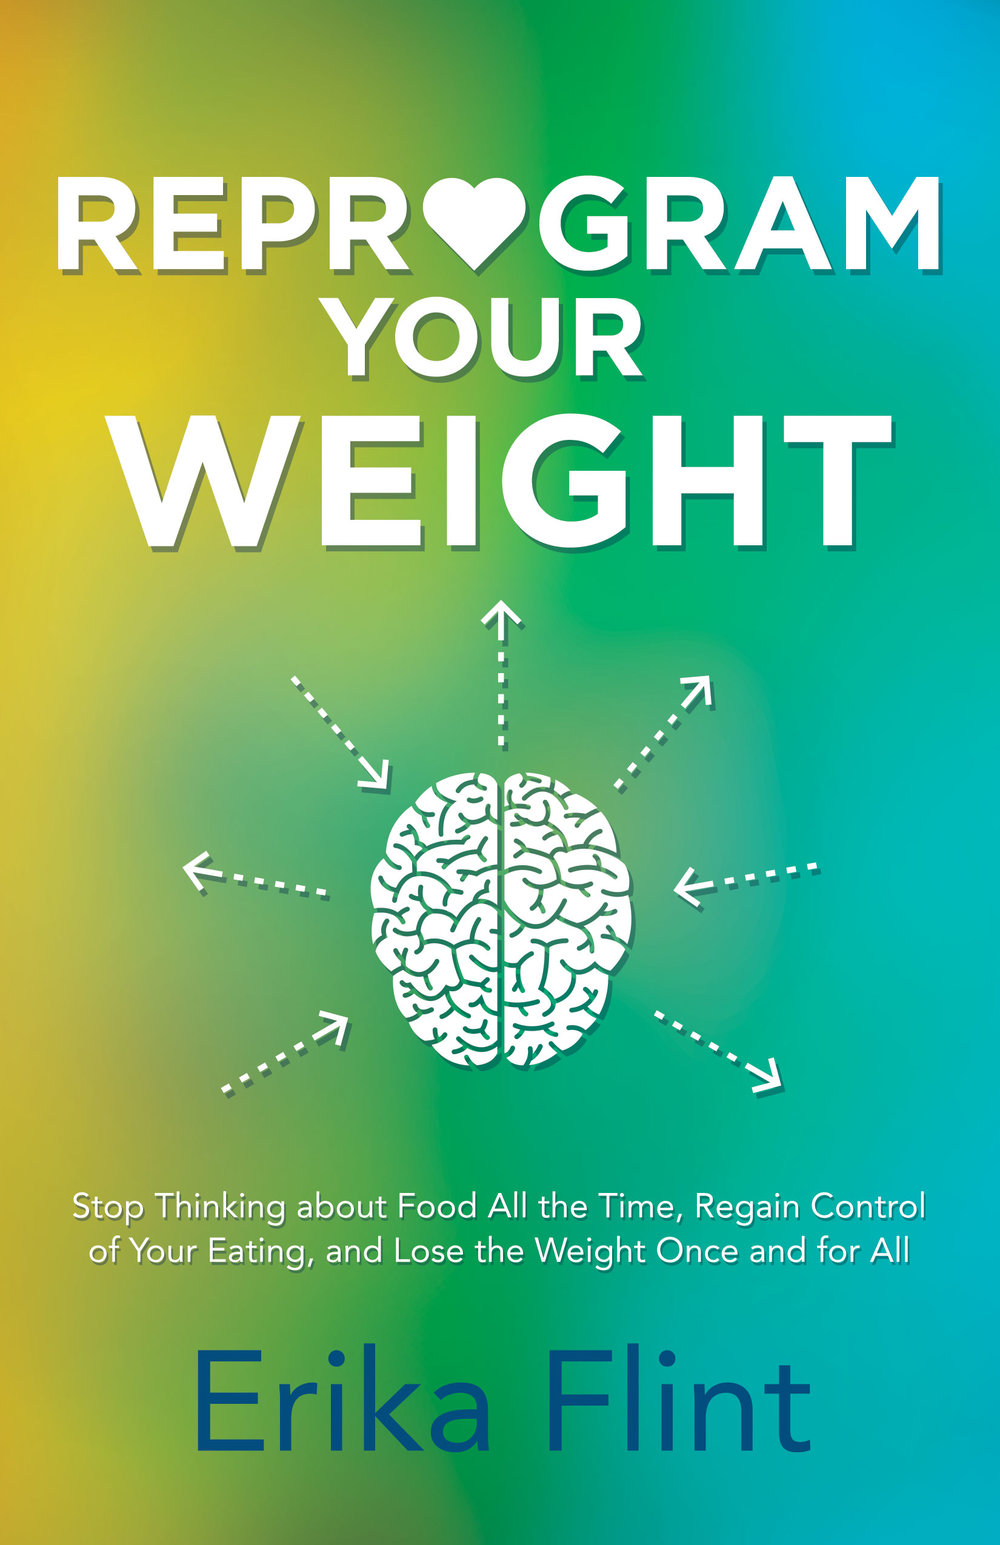 Reprogram Your Weight arrives in Bookstores July 4, 2017 - Learn more Find it in your favorite bookstore.Schedule a complimentary consultation.